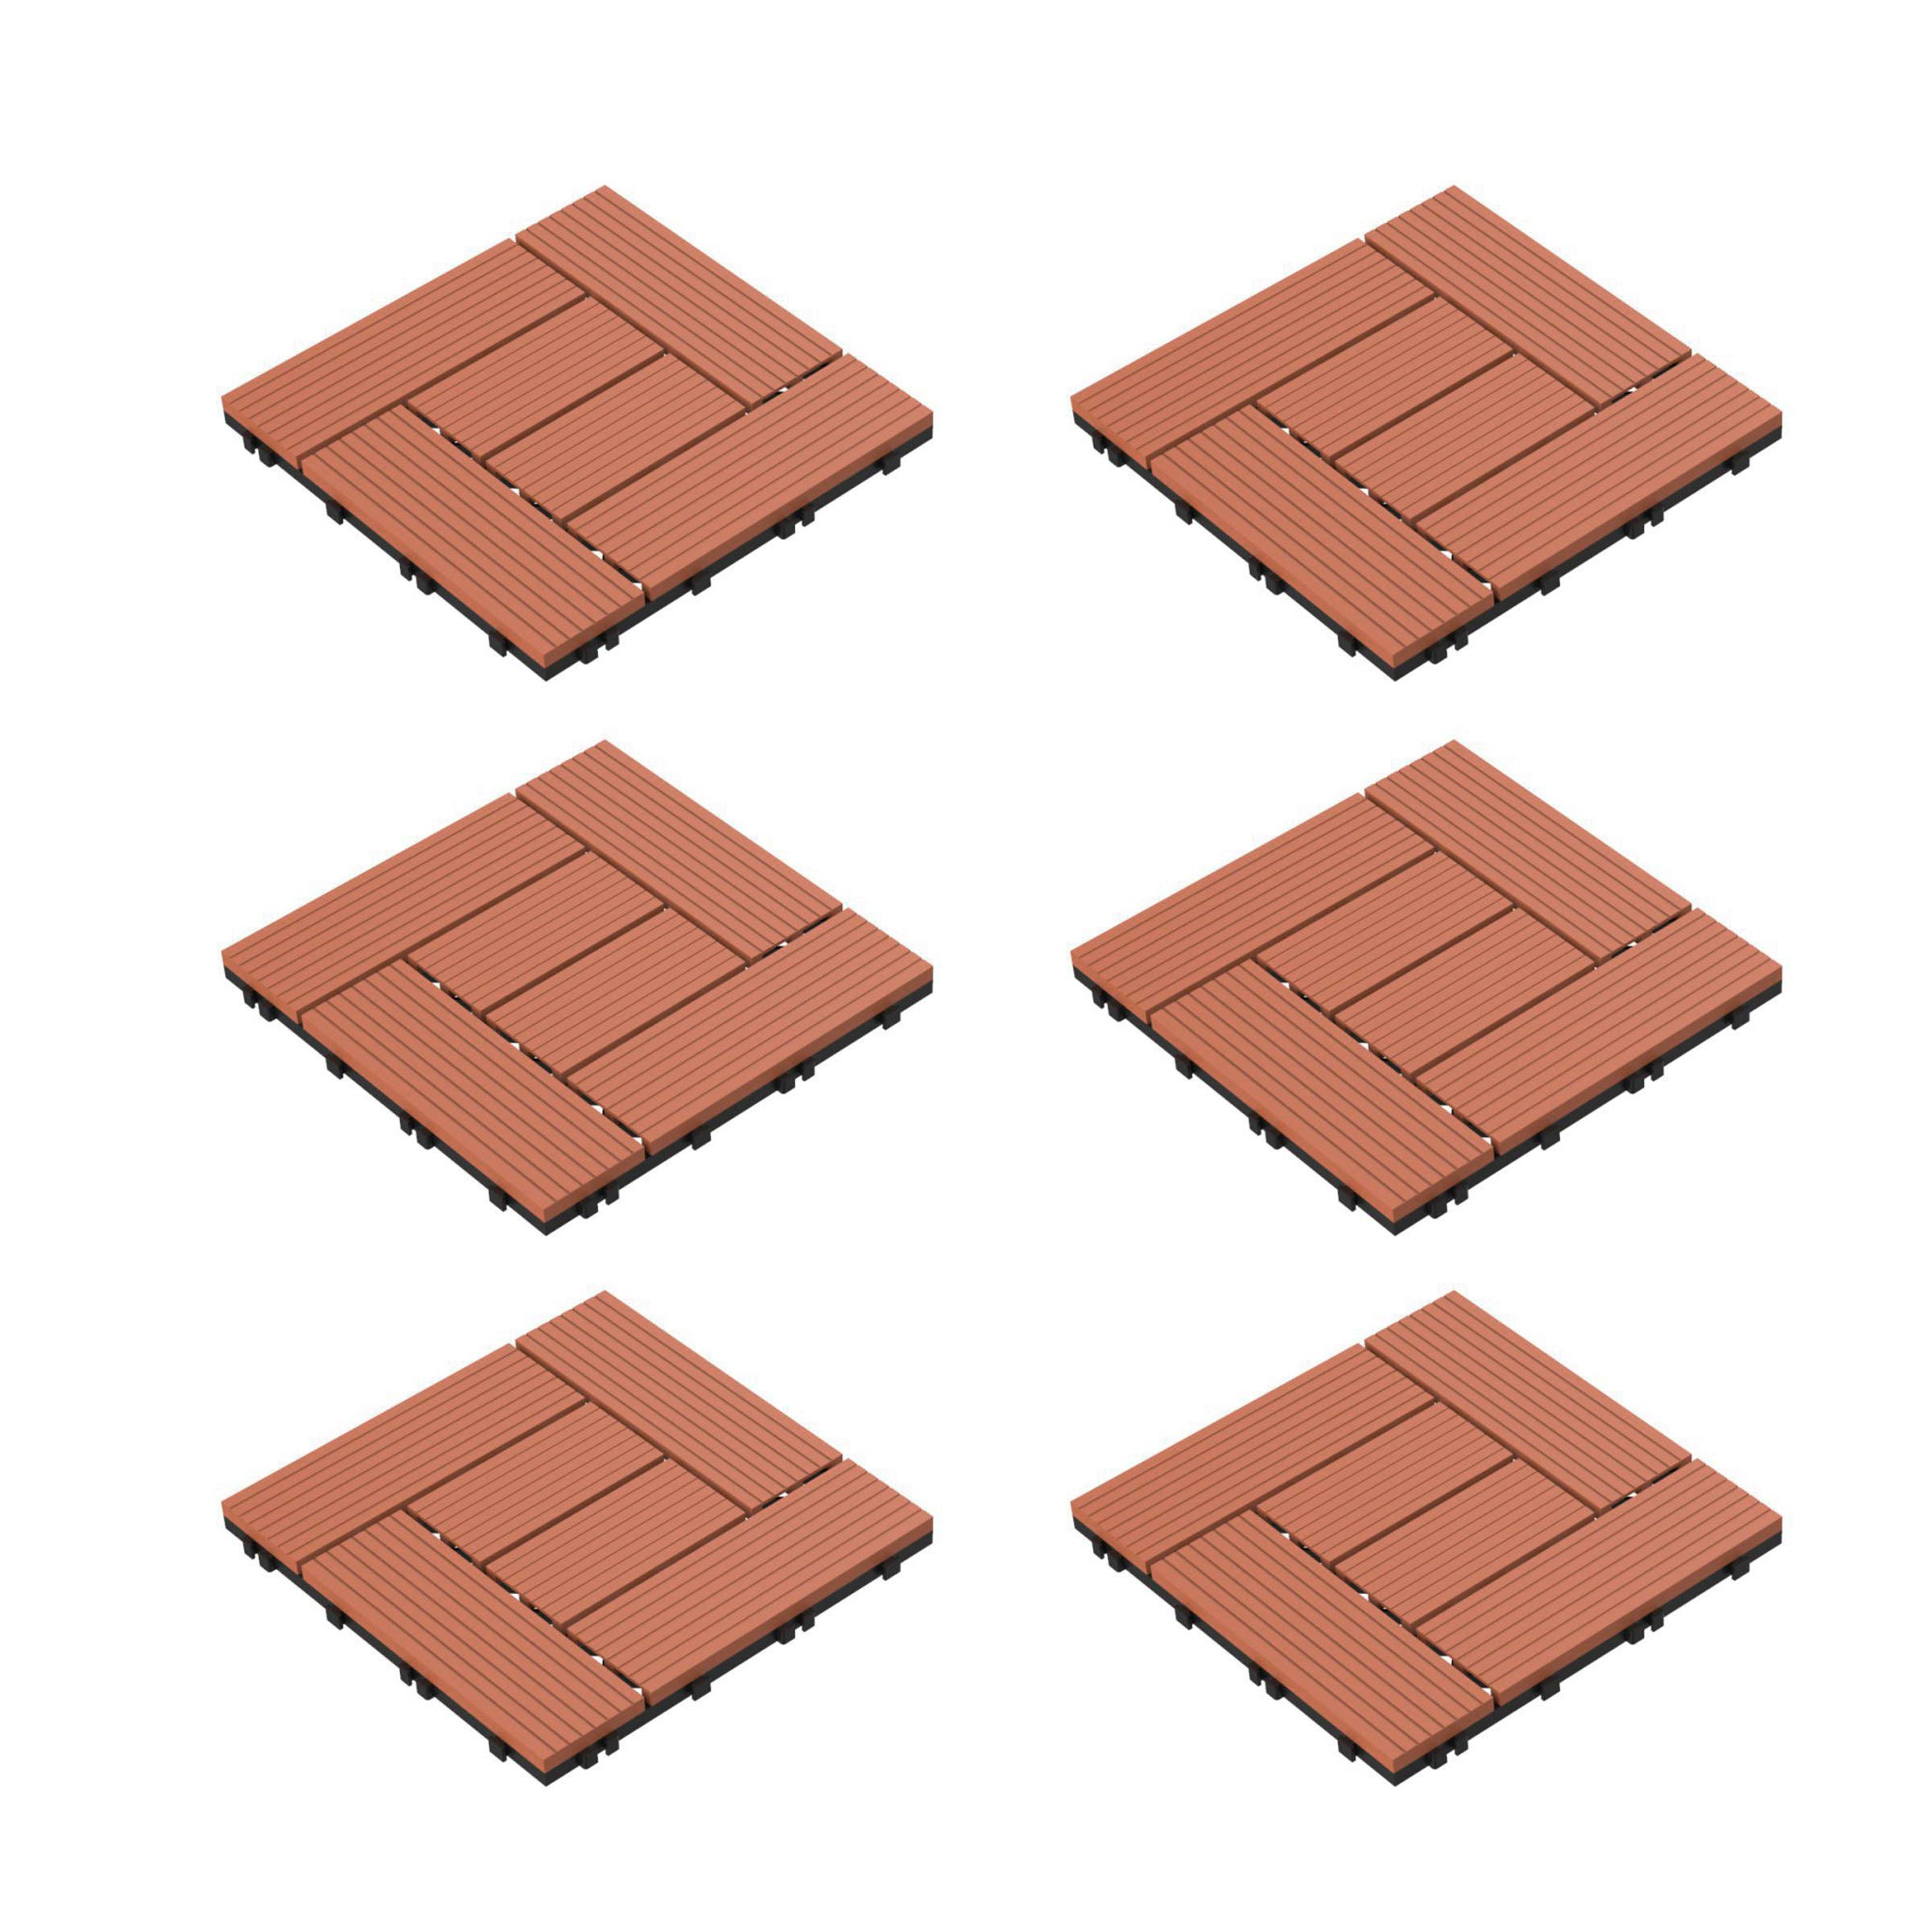 Pure Garden 50-LG1190 Patio and Deck Tiles - Interlocking Criss-Cross Pattern Outdoor Flooring Weather and Slip Resistant Square (Terra Cotta Color 6 Pcs), by Pure Garden